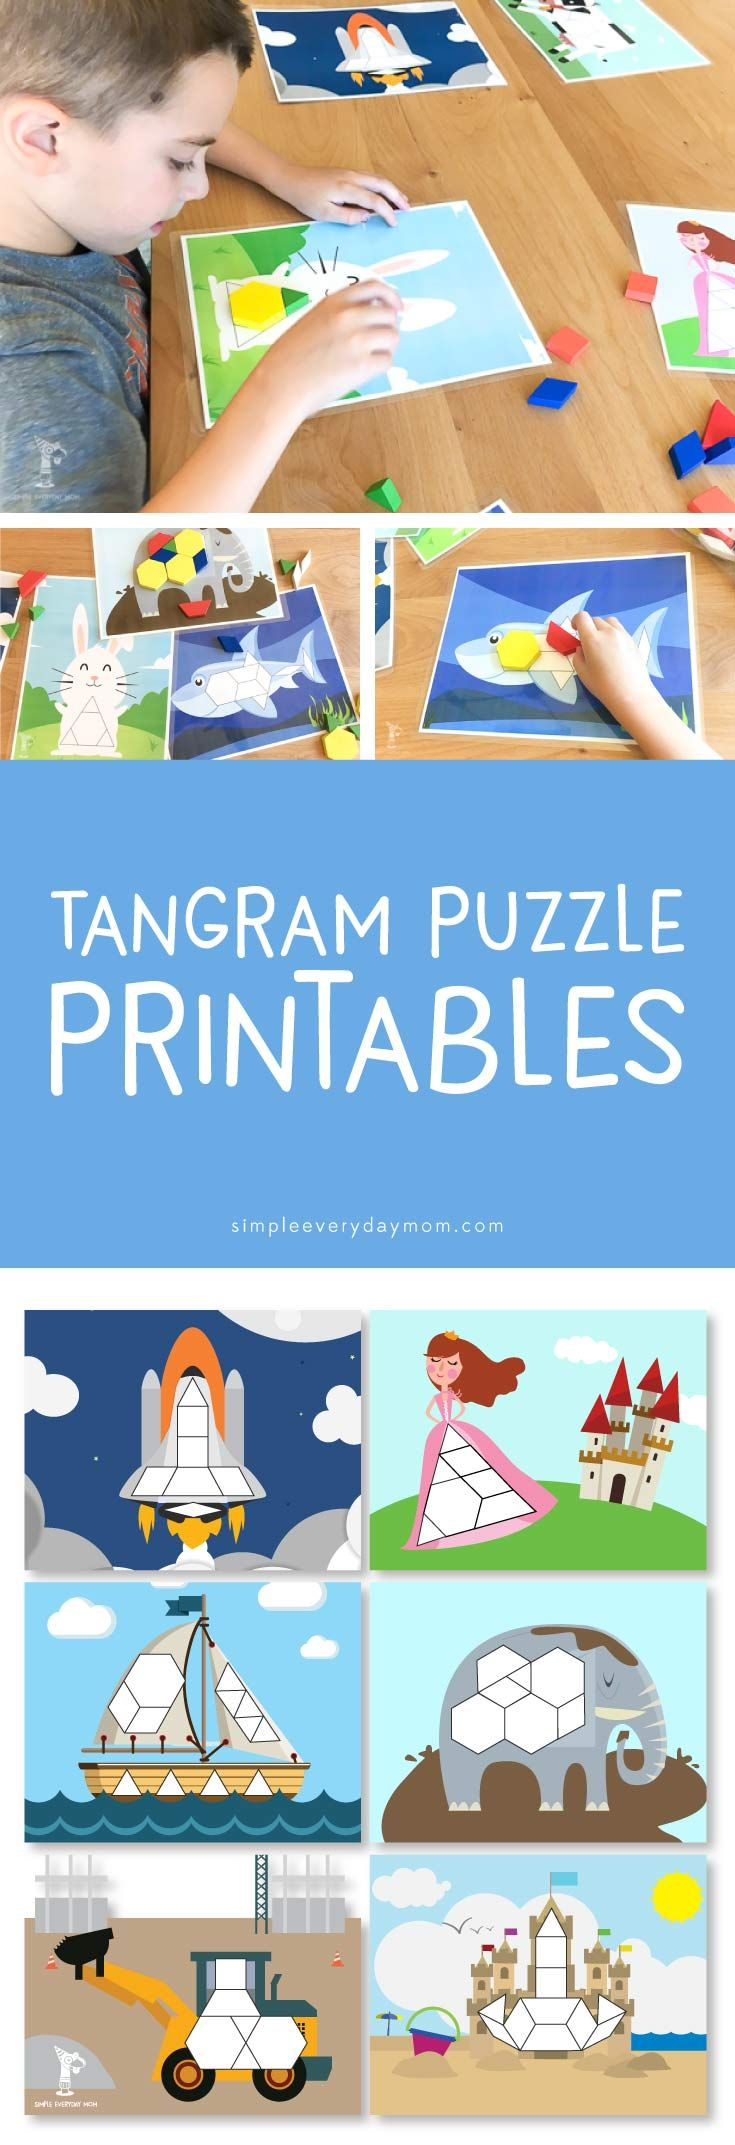 tangram printable | math activities for kids | learn shapes #mathgamesforkids